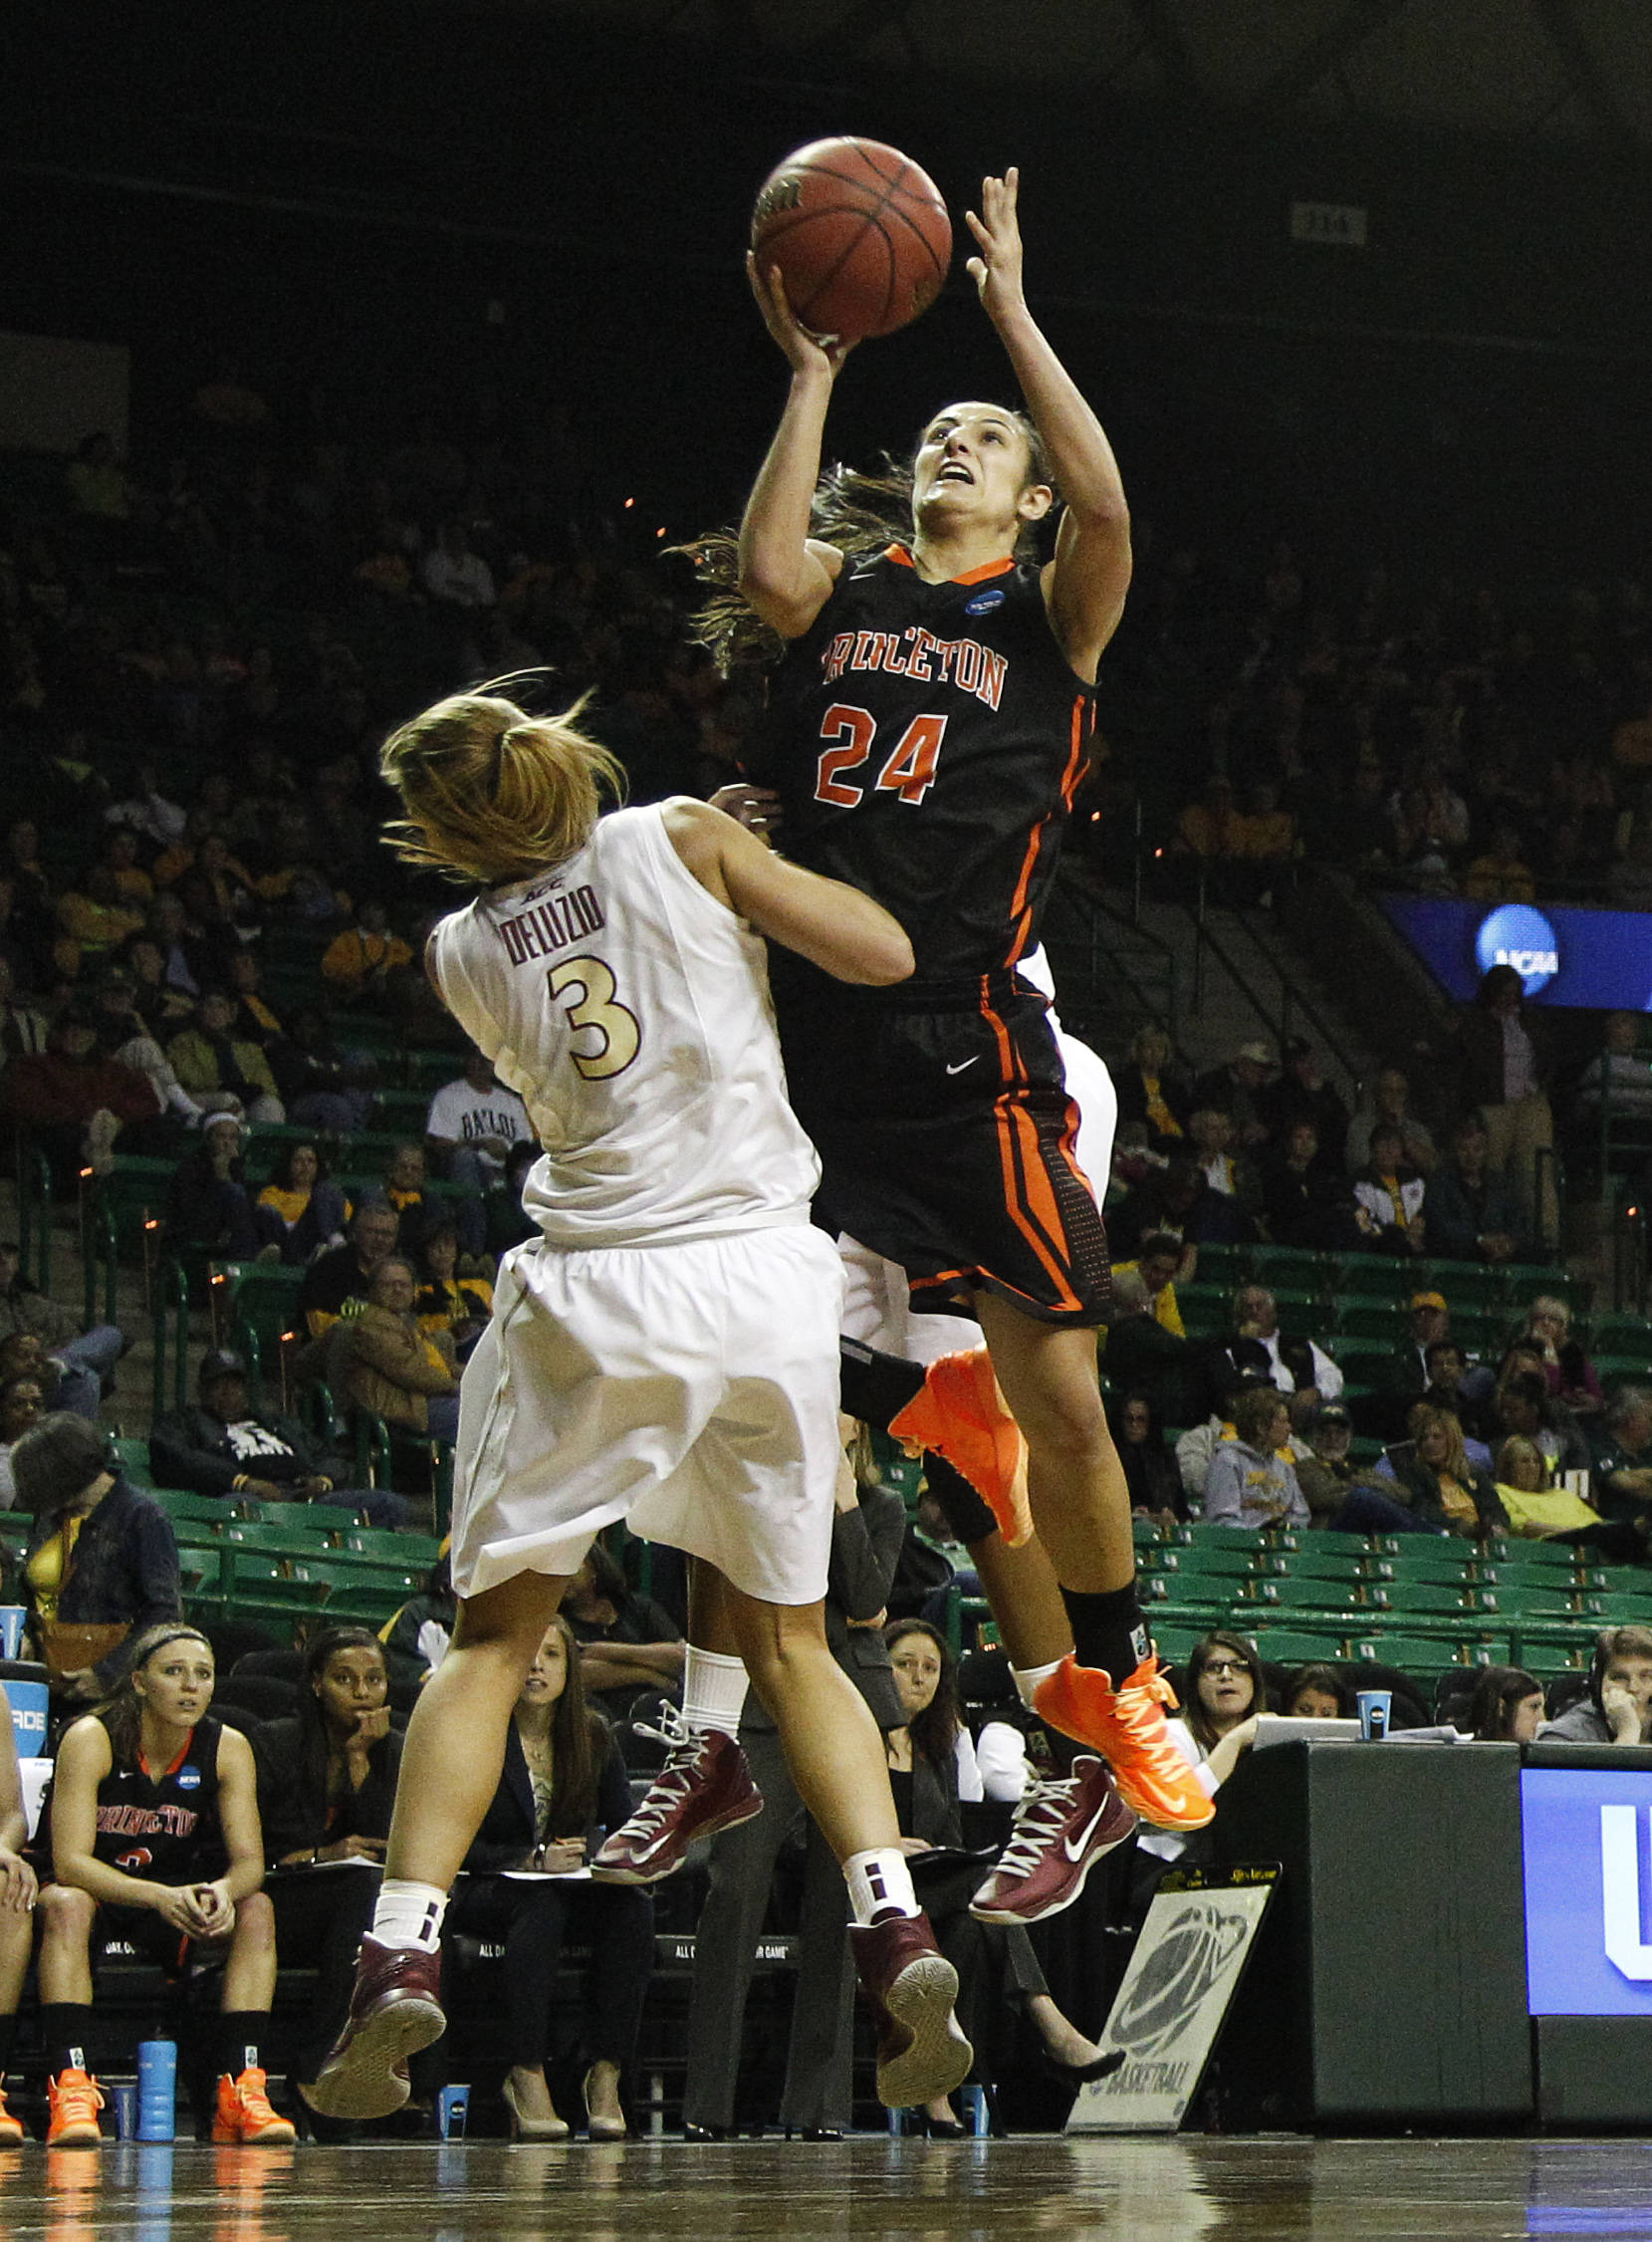 Princeton guard Niveen Rasheed (24) shoots over Florida State's Alexa Deluzio (3) in the second half of a first-round game in the women's NCAA college basketball tournament on Sunday March 24, 2013, in Waco, Texas. FSU won 60-44. (AP Photo/Tony Gutierrez)